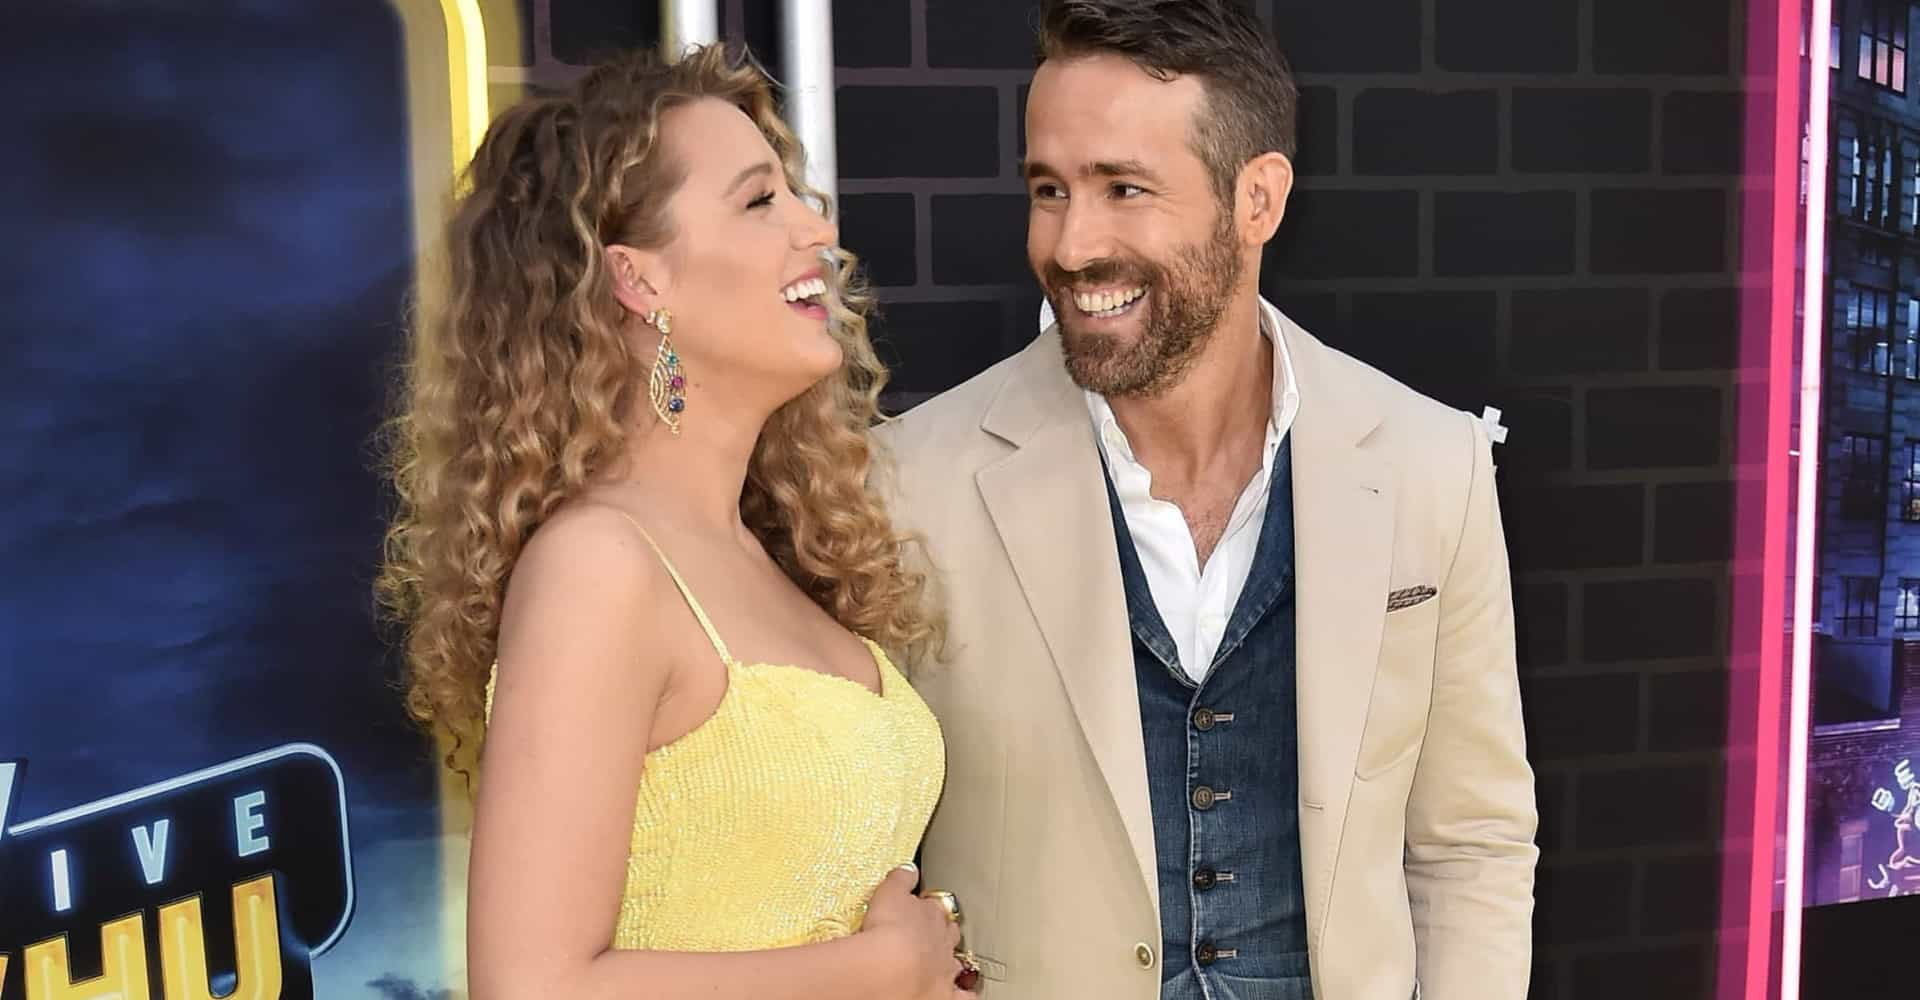 Couple goals: Ryan Reynolds and Blake Lively are expecting!